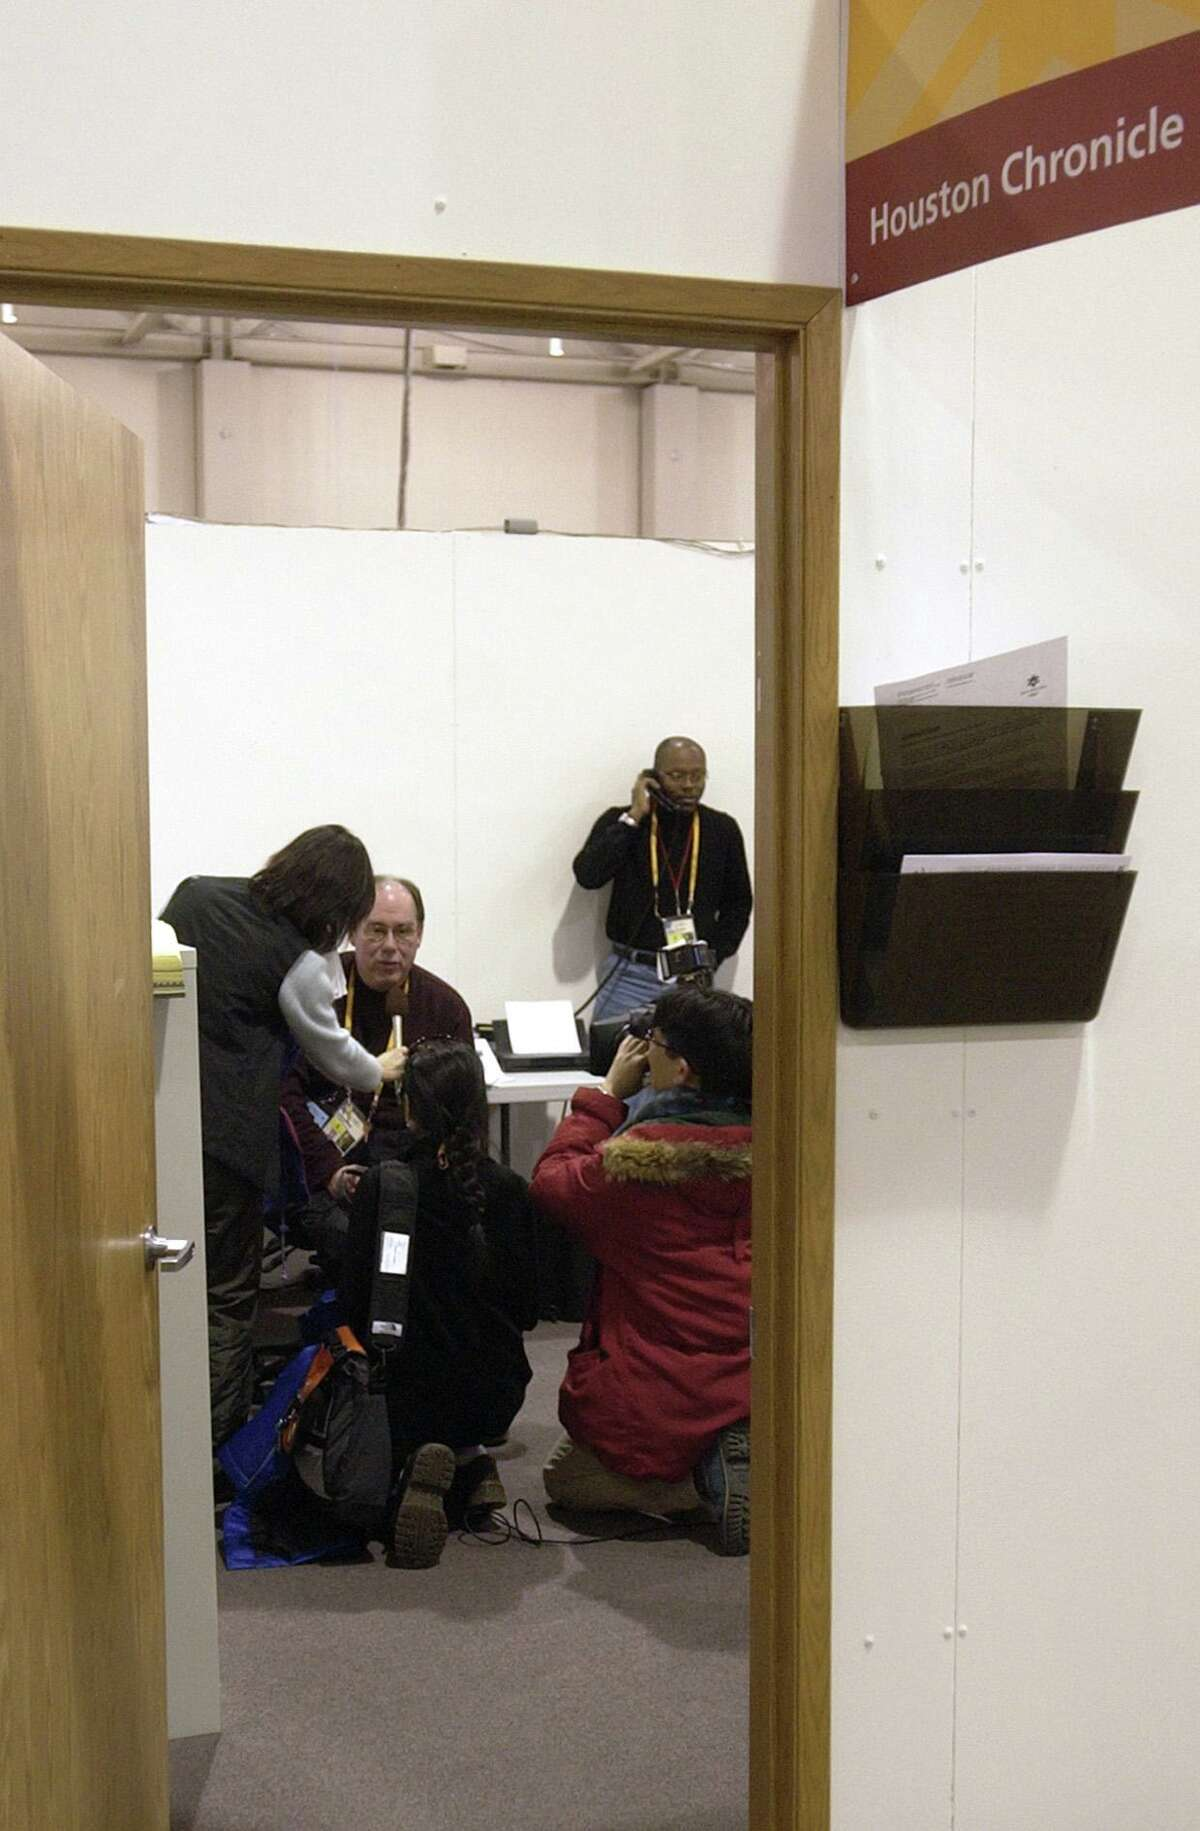 Chronicle sportswriter Jerome Solomon answers a phone call, while Asst. Sports Editor David Barron is interviewed by a Japanese television crew in the Chronicle workspace at the Main Media Center on the eve of the 2002 Olympic Winter Games in Salt Lake City on Thursday, Feb. 7, 2002.